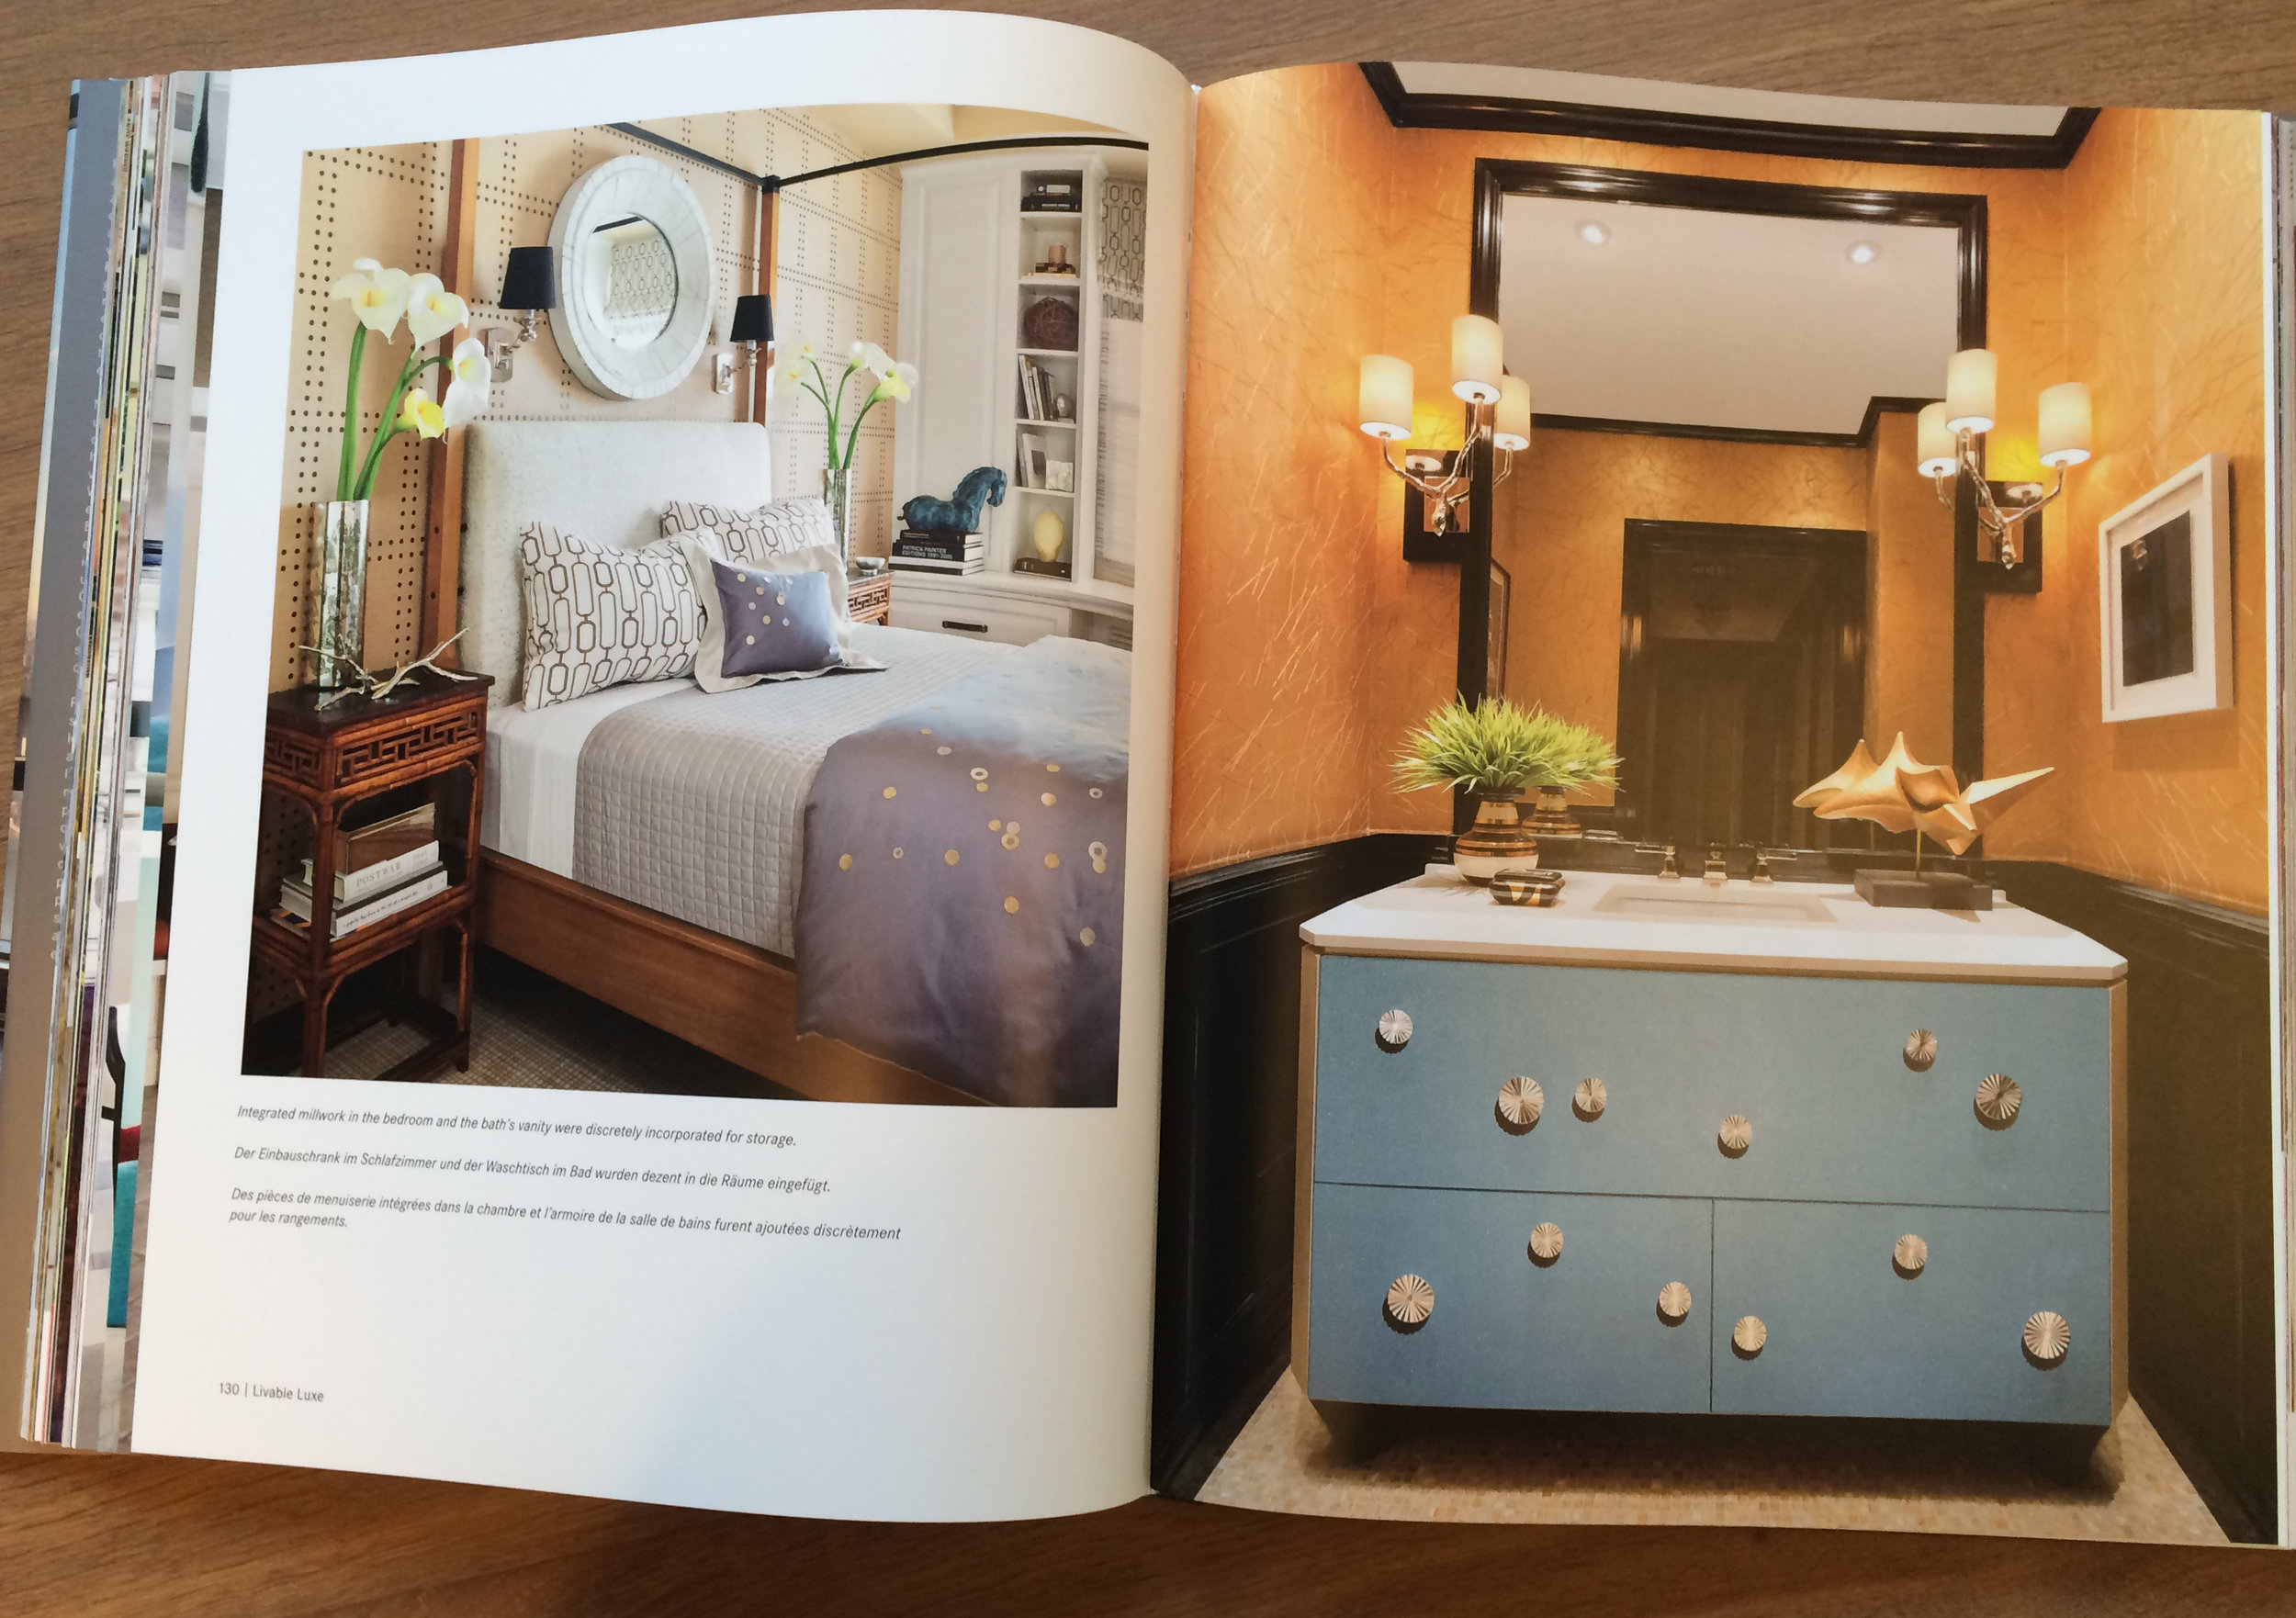 Living In Style New York Book 2014 - Page 10.JPG